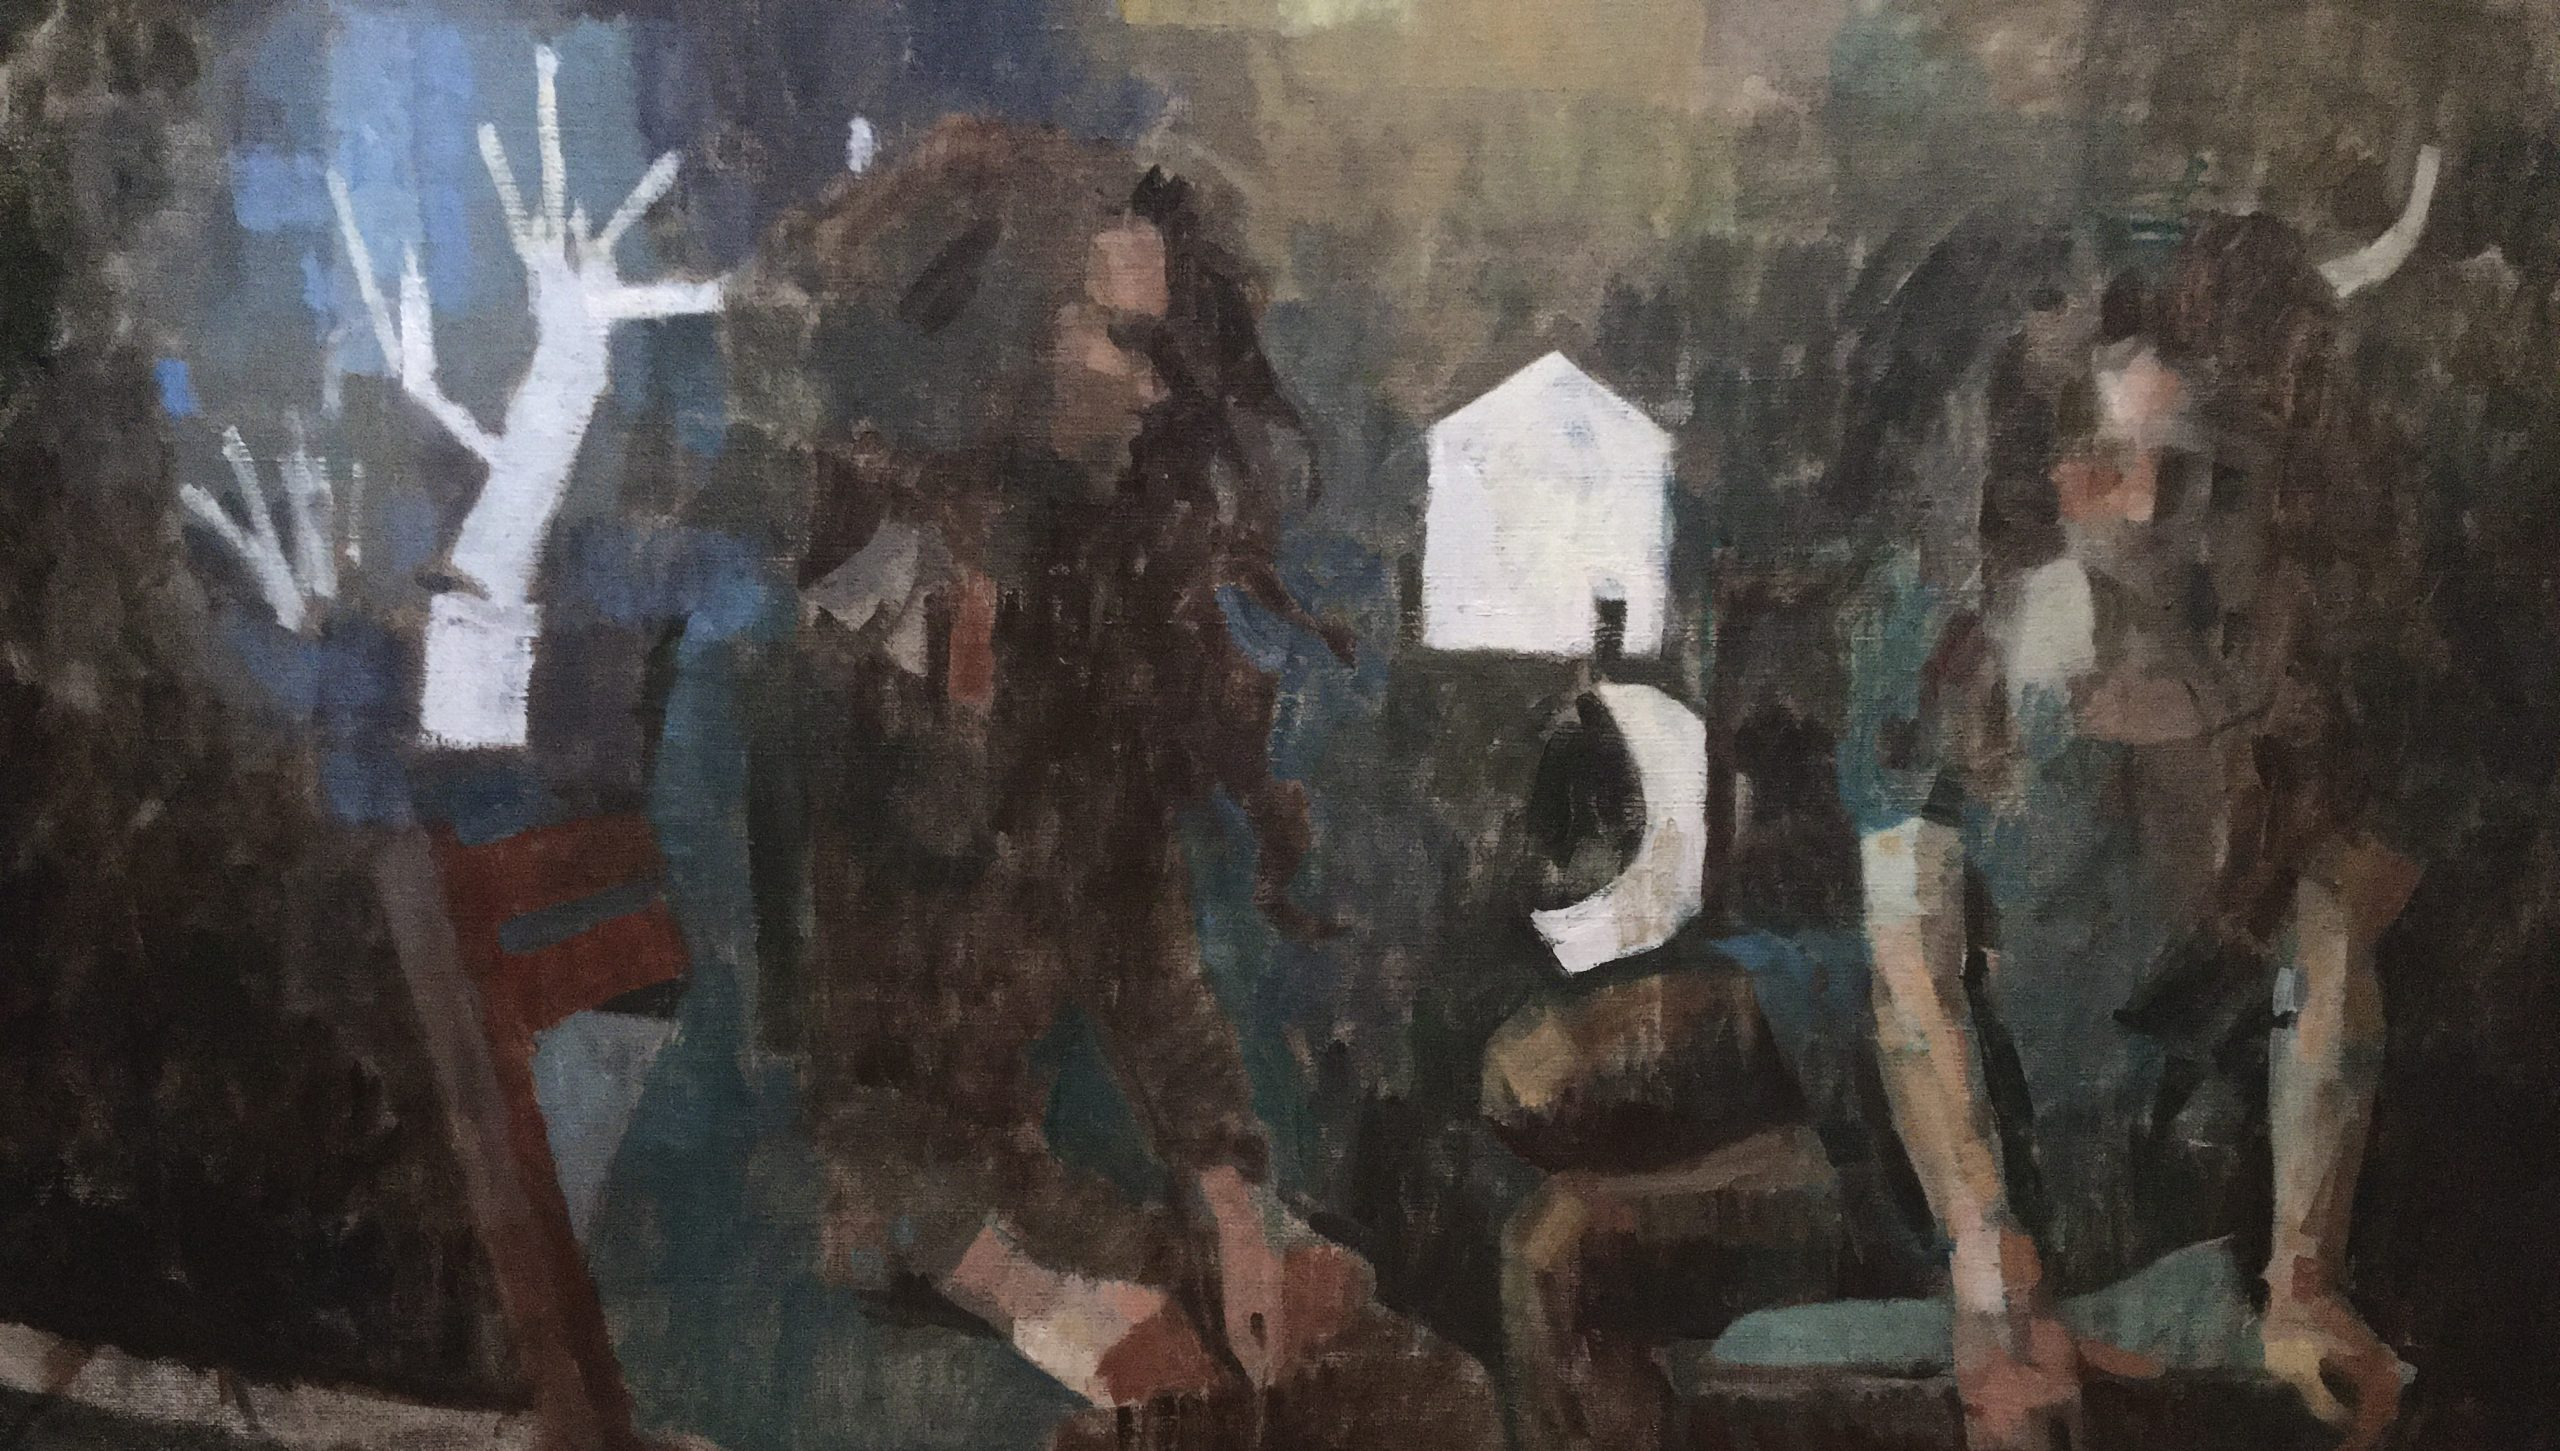 """James Bland - 2020 - The Well - Oil on Canvas - 22"""" x 38"""""""